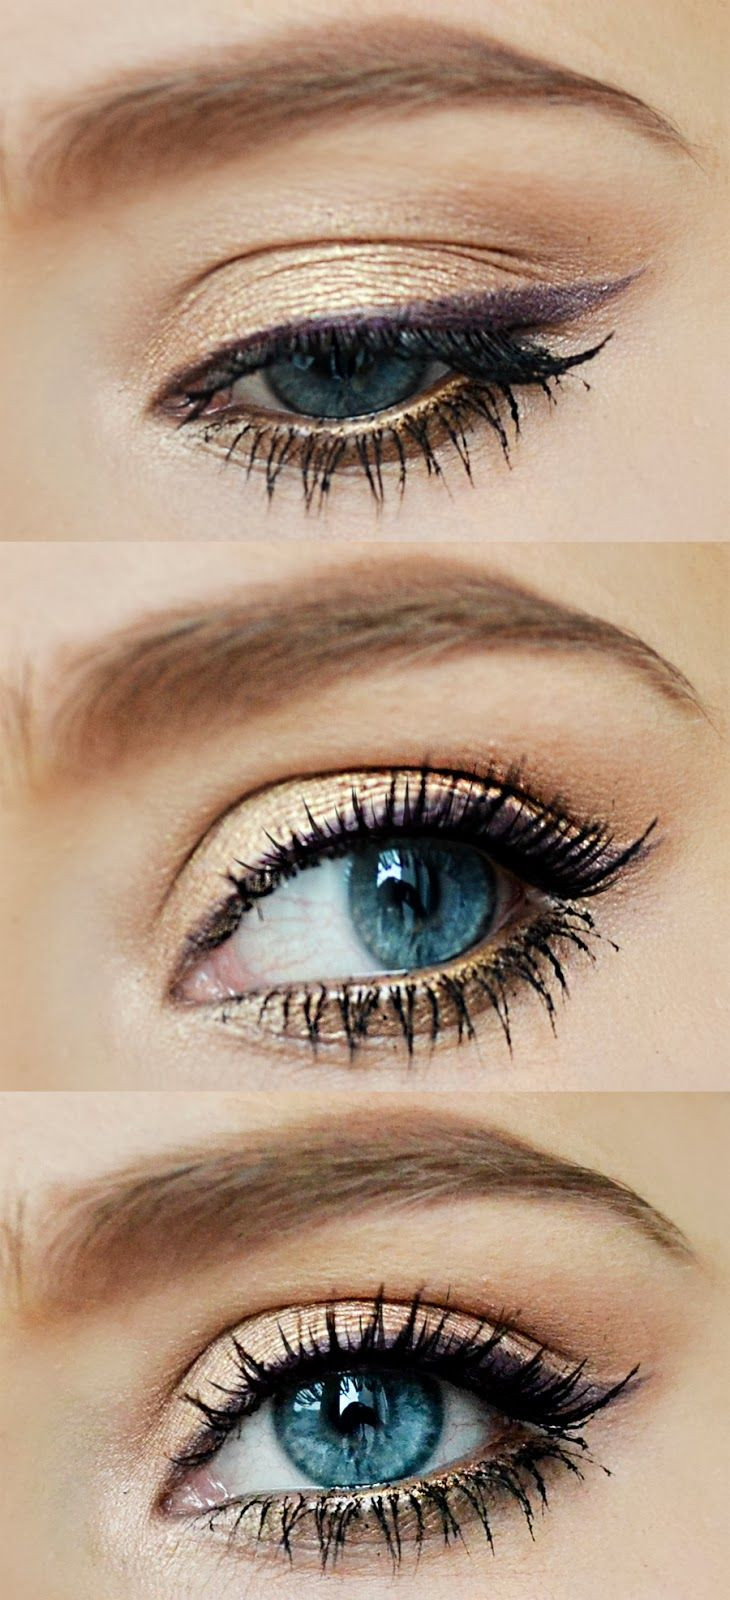 Amazing look for redheads: purple winged eyeliner and gold shadow!  To get the look try Redhead Revolution's calypso eyeliner and 24k eyeshadow. makeup-for-redheads